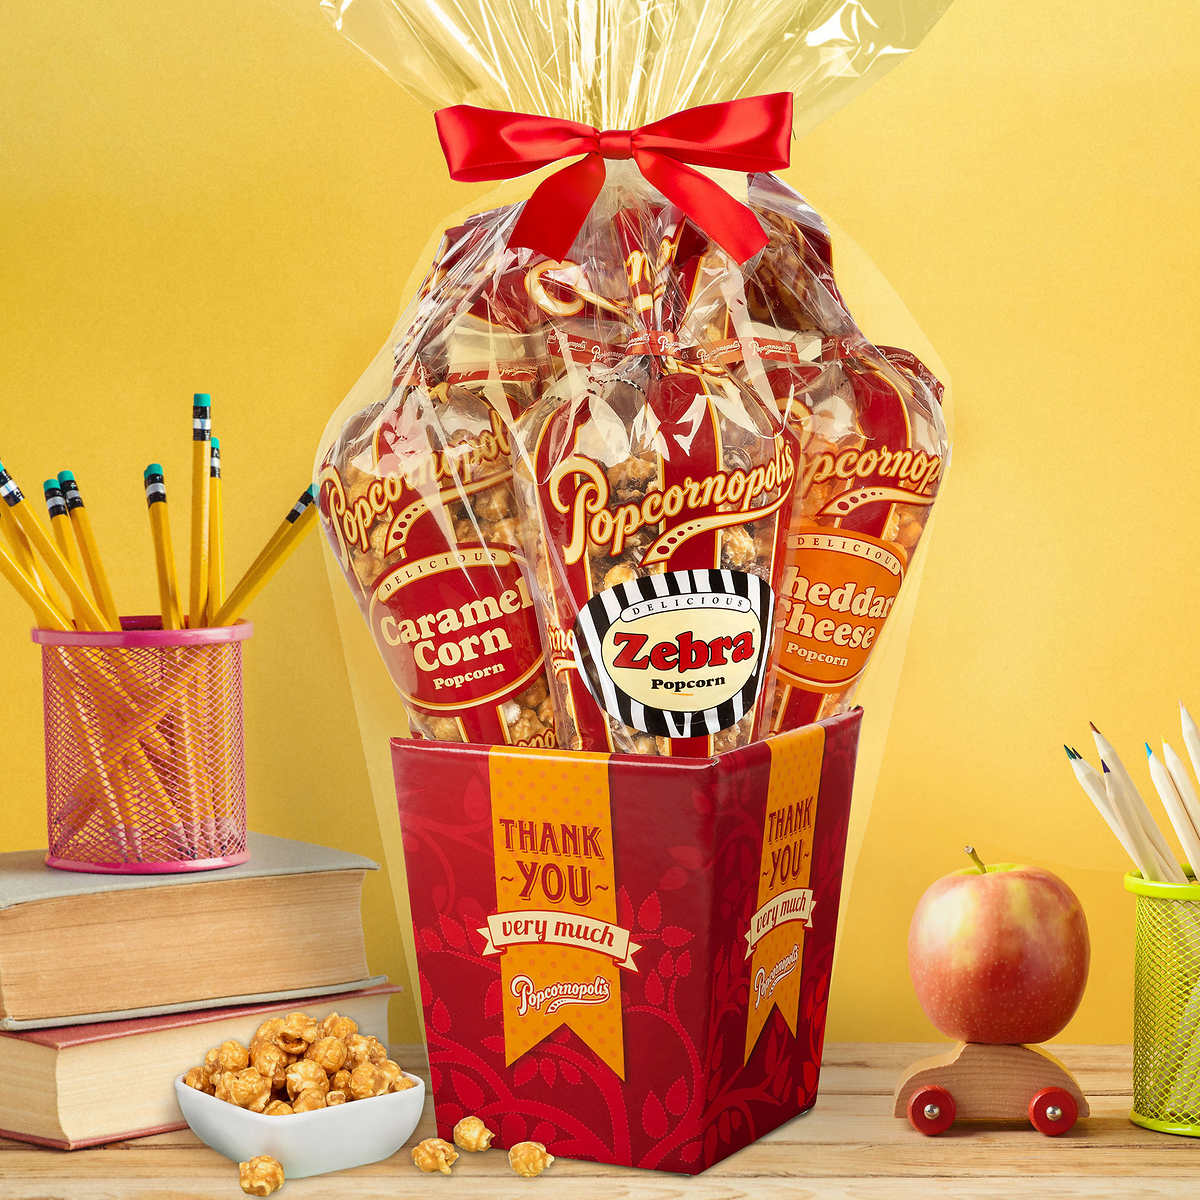 Popcornopolis Special Occasions 5 Cone Popcorn Gift Baskets